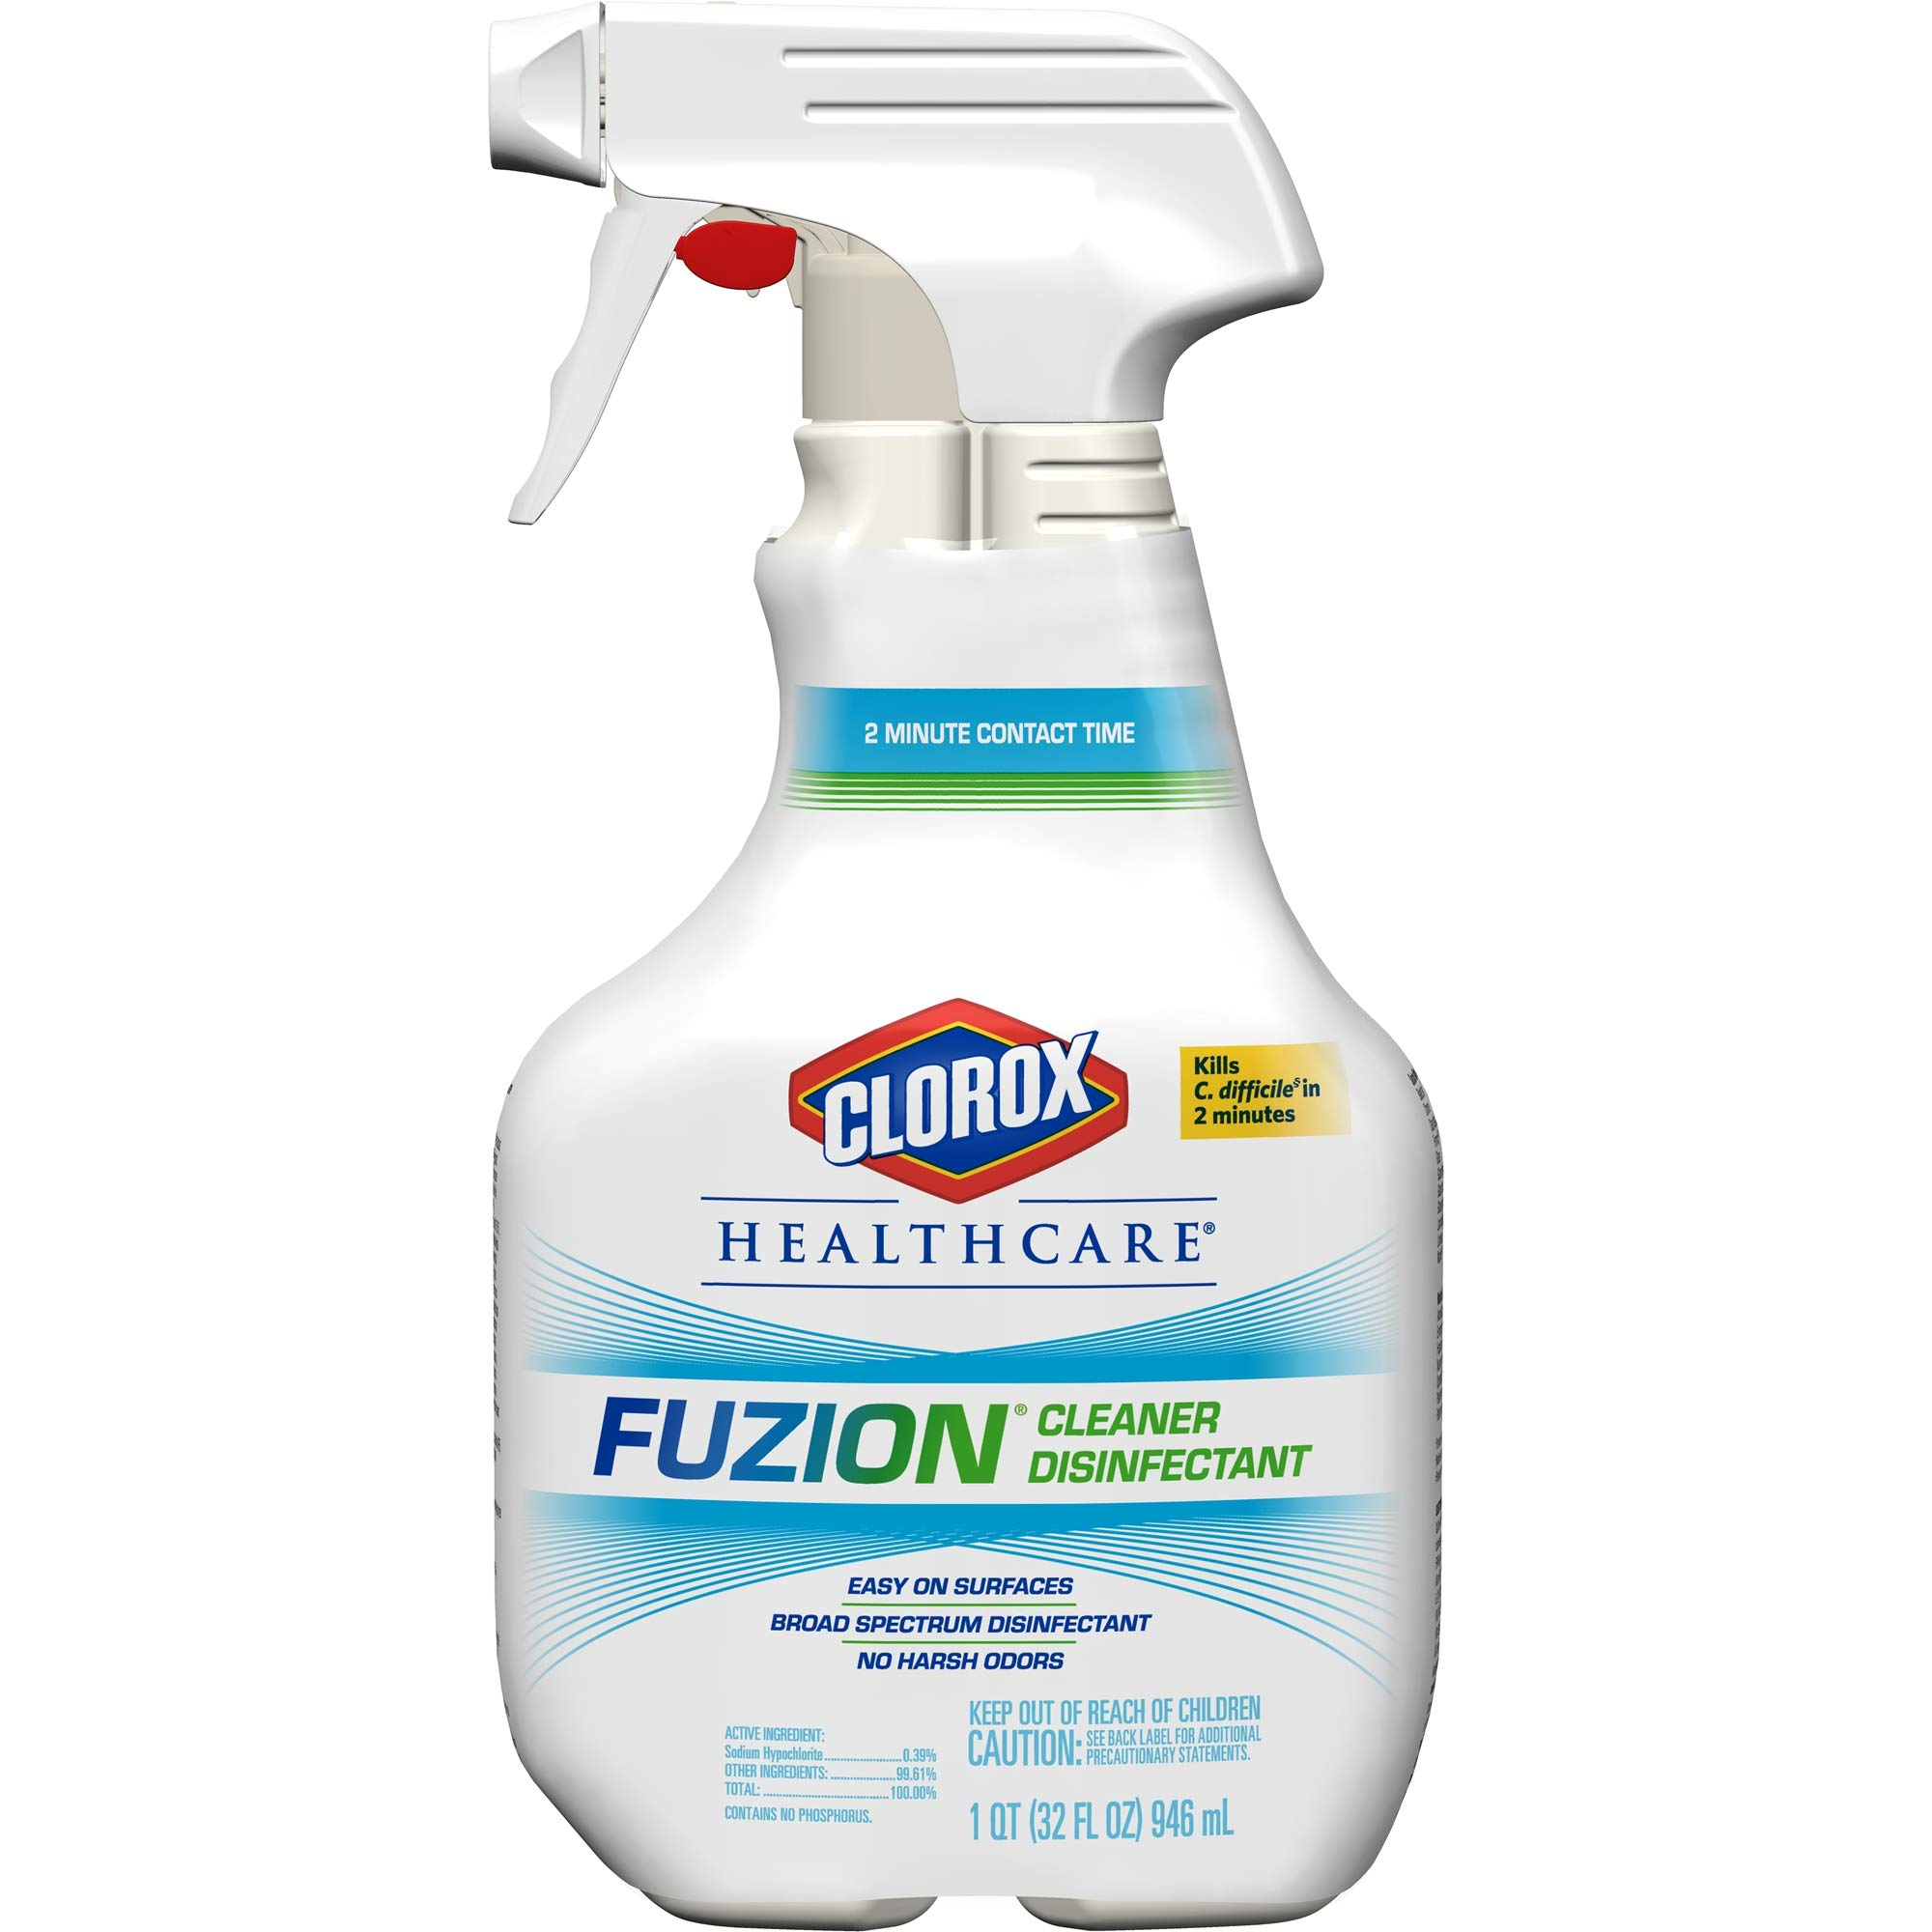 Clorox Healthcare Fuzion Cleaner Disinfectant, Spray, 32 Ounces (For Healthcare Use)